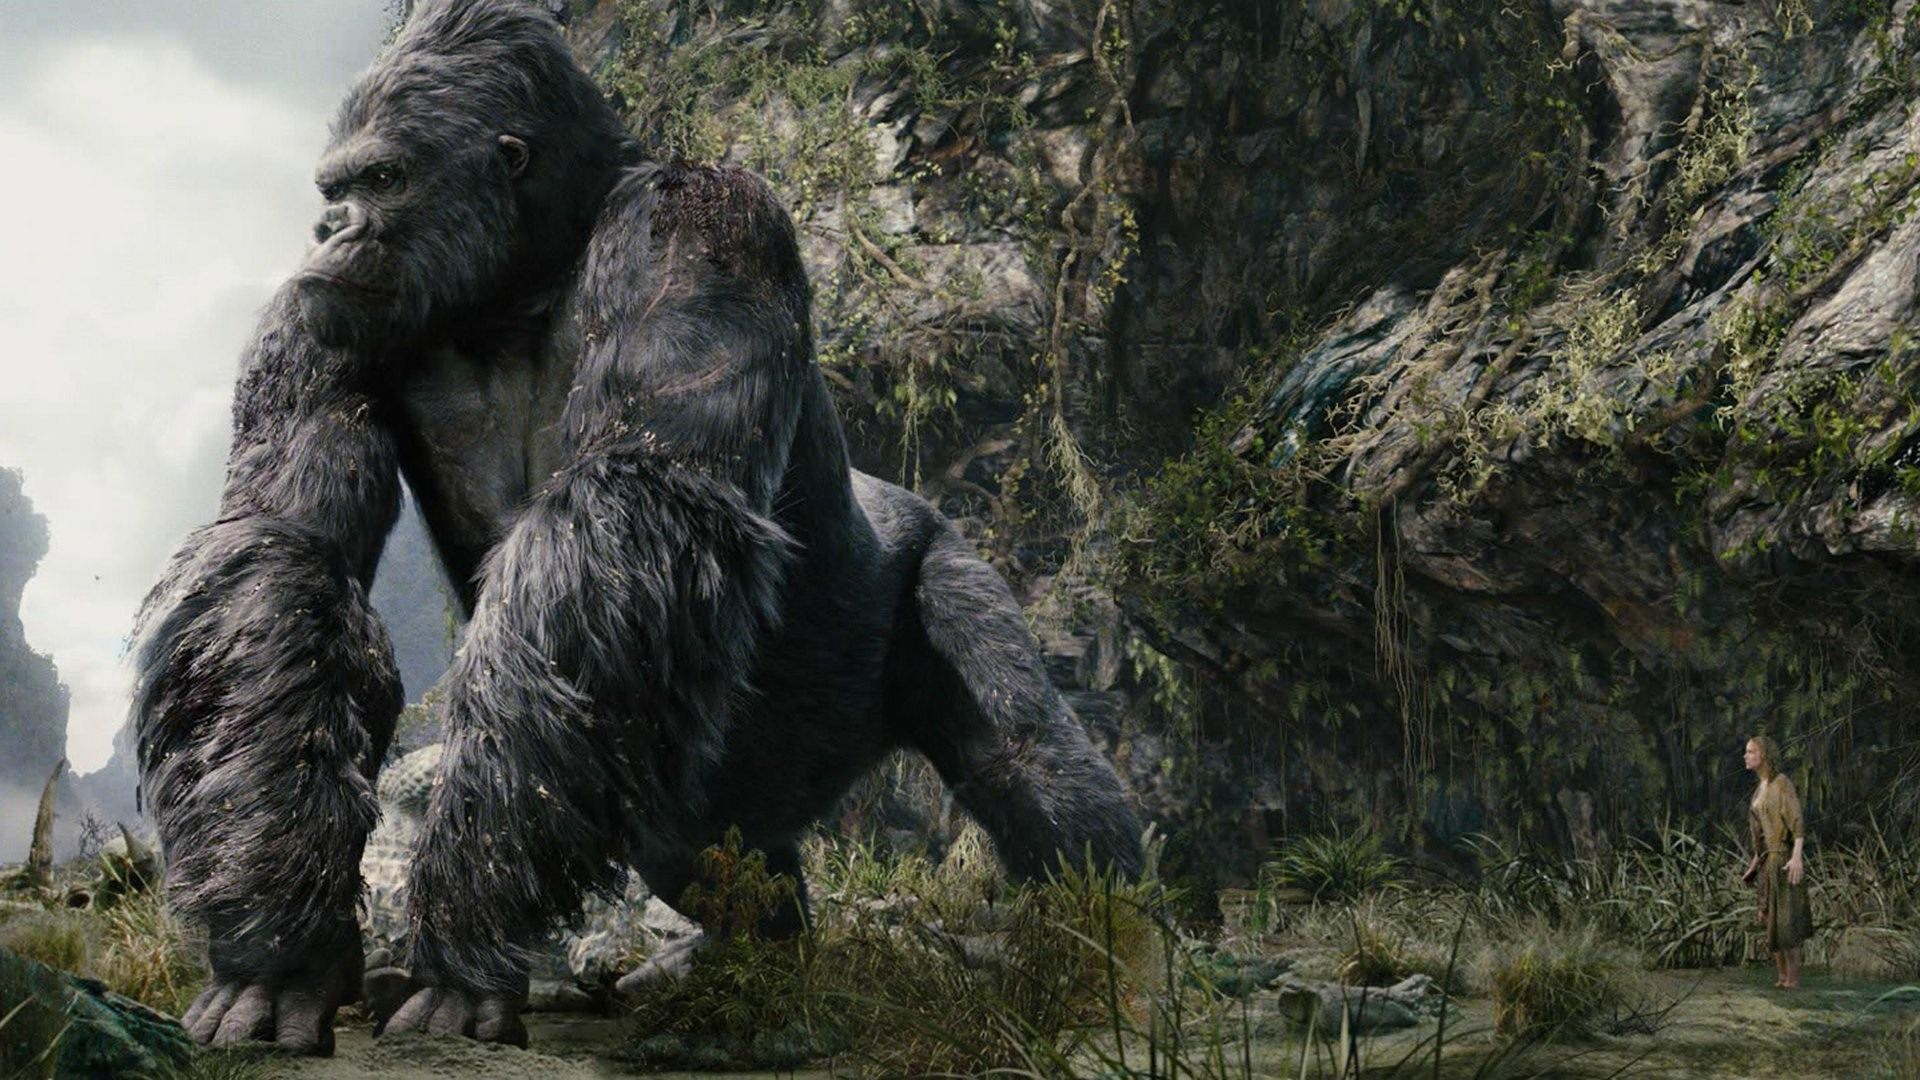 Kong: Skull Island's Ape Will Be The Biggest One Ever.